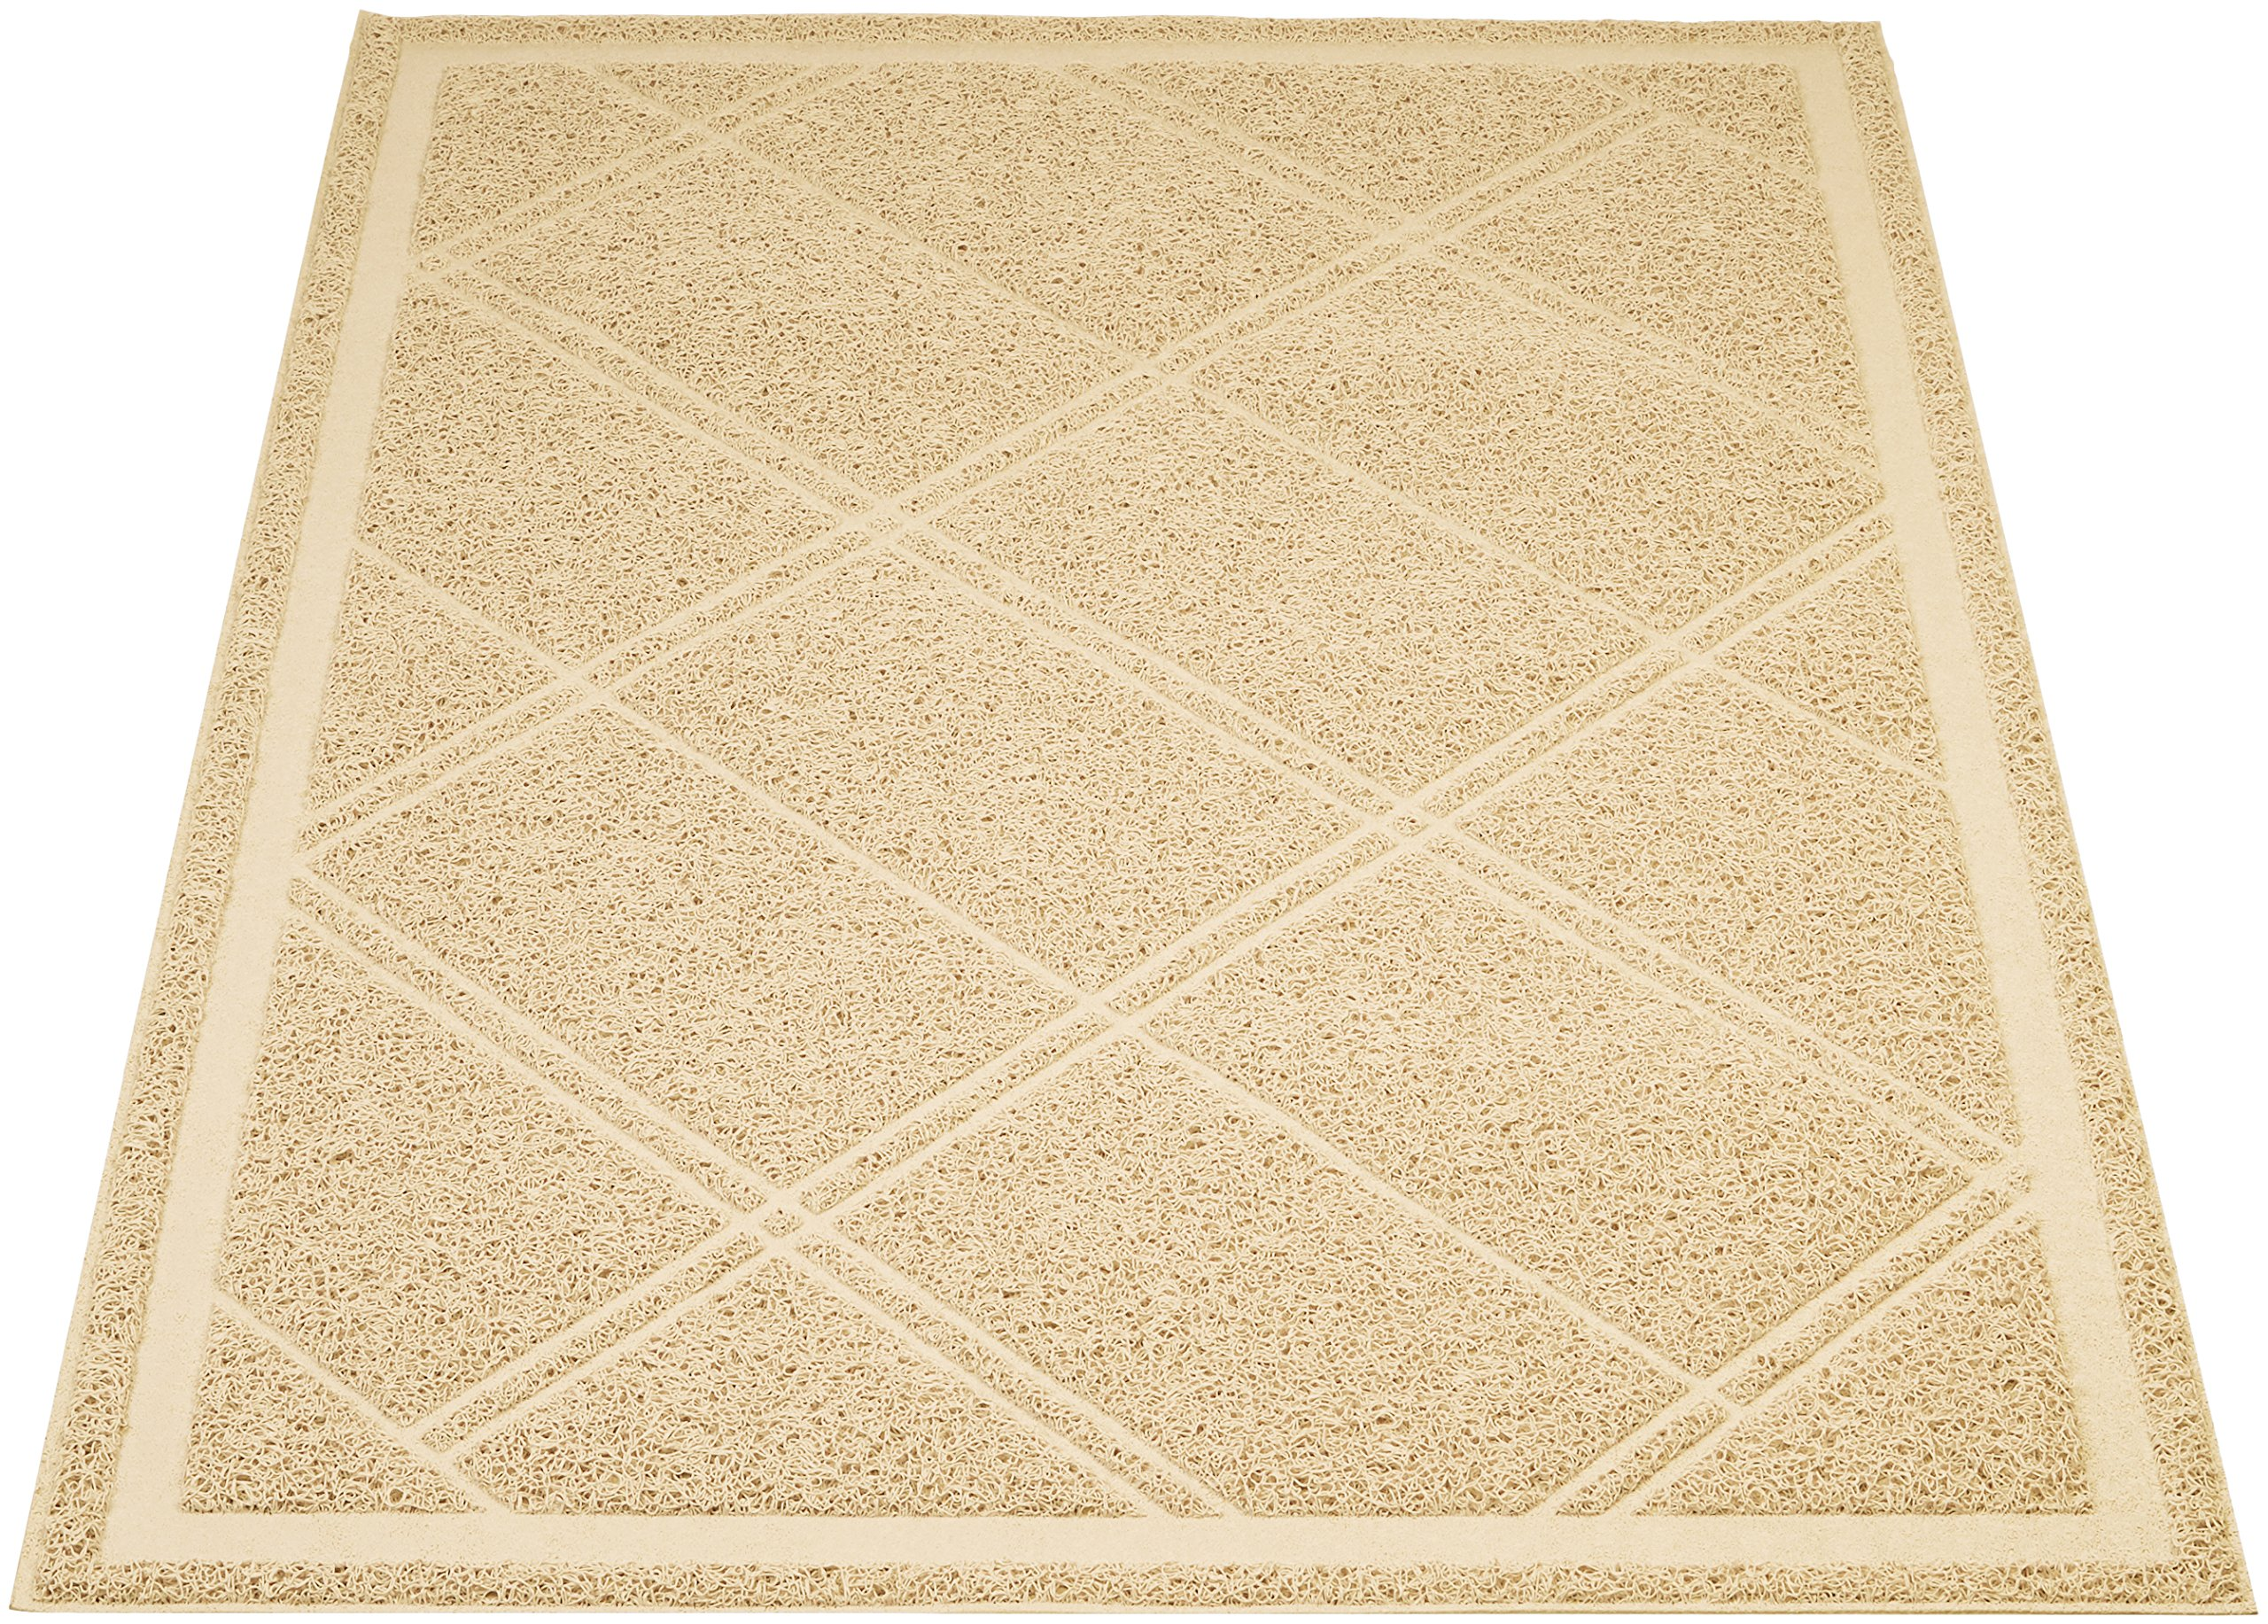 AmazonBasics Cat Litter Box Mat - 24 x 35 Inches, tan by AmazonBasics